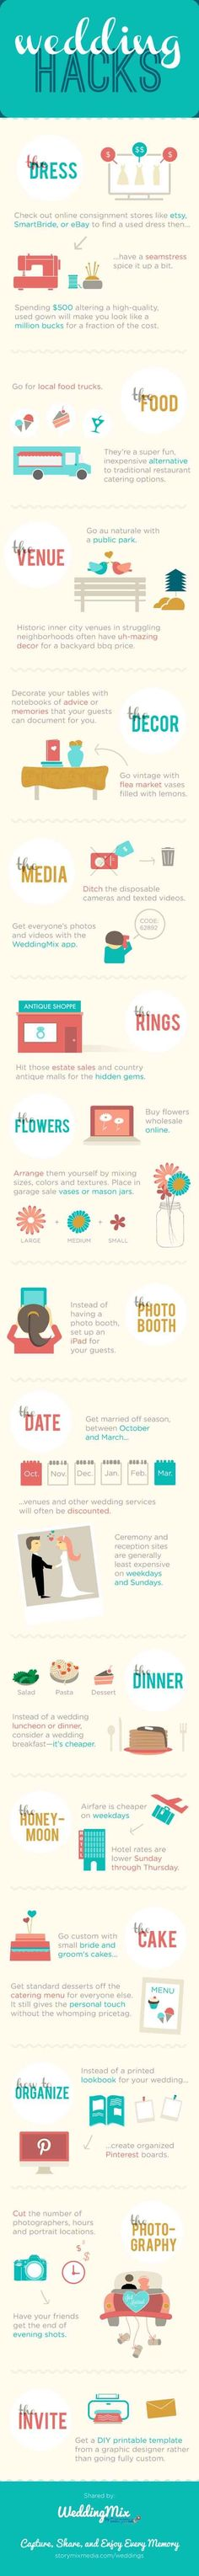 DIY Wedding Ideas | Cool Hacks for DIY Weddings on a Budget - cheap ideas and budget tips [ Infographic ] save money on wedding, frugal wedding ideas #wedding #frugal